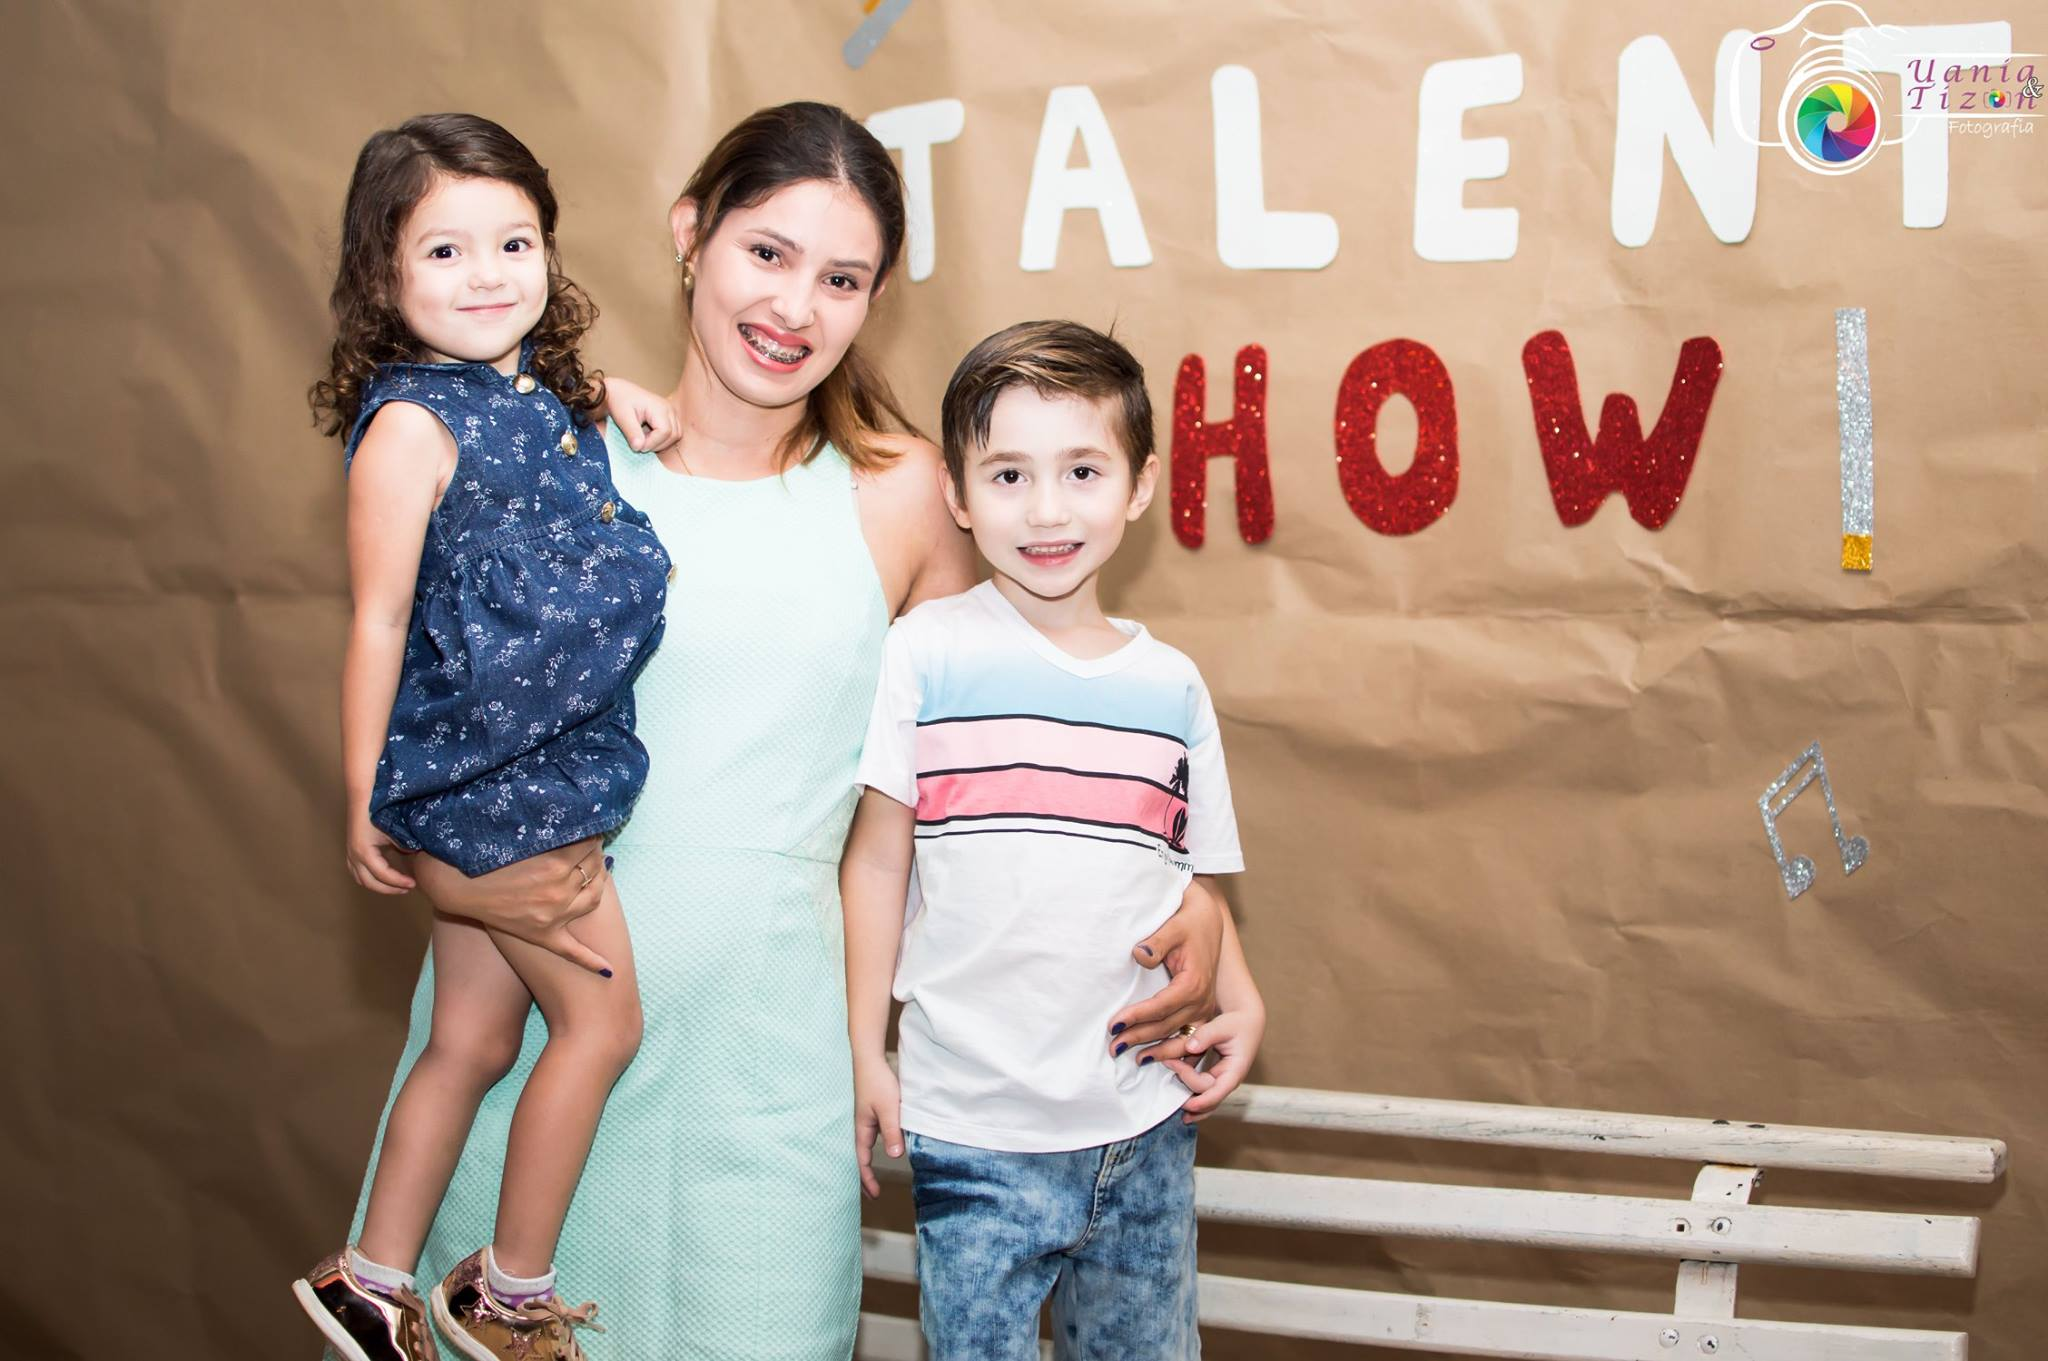 Marialva/ PR - Talent Show - Mother's Day